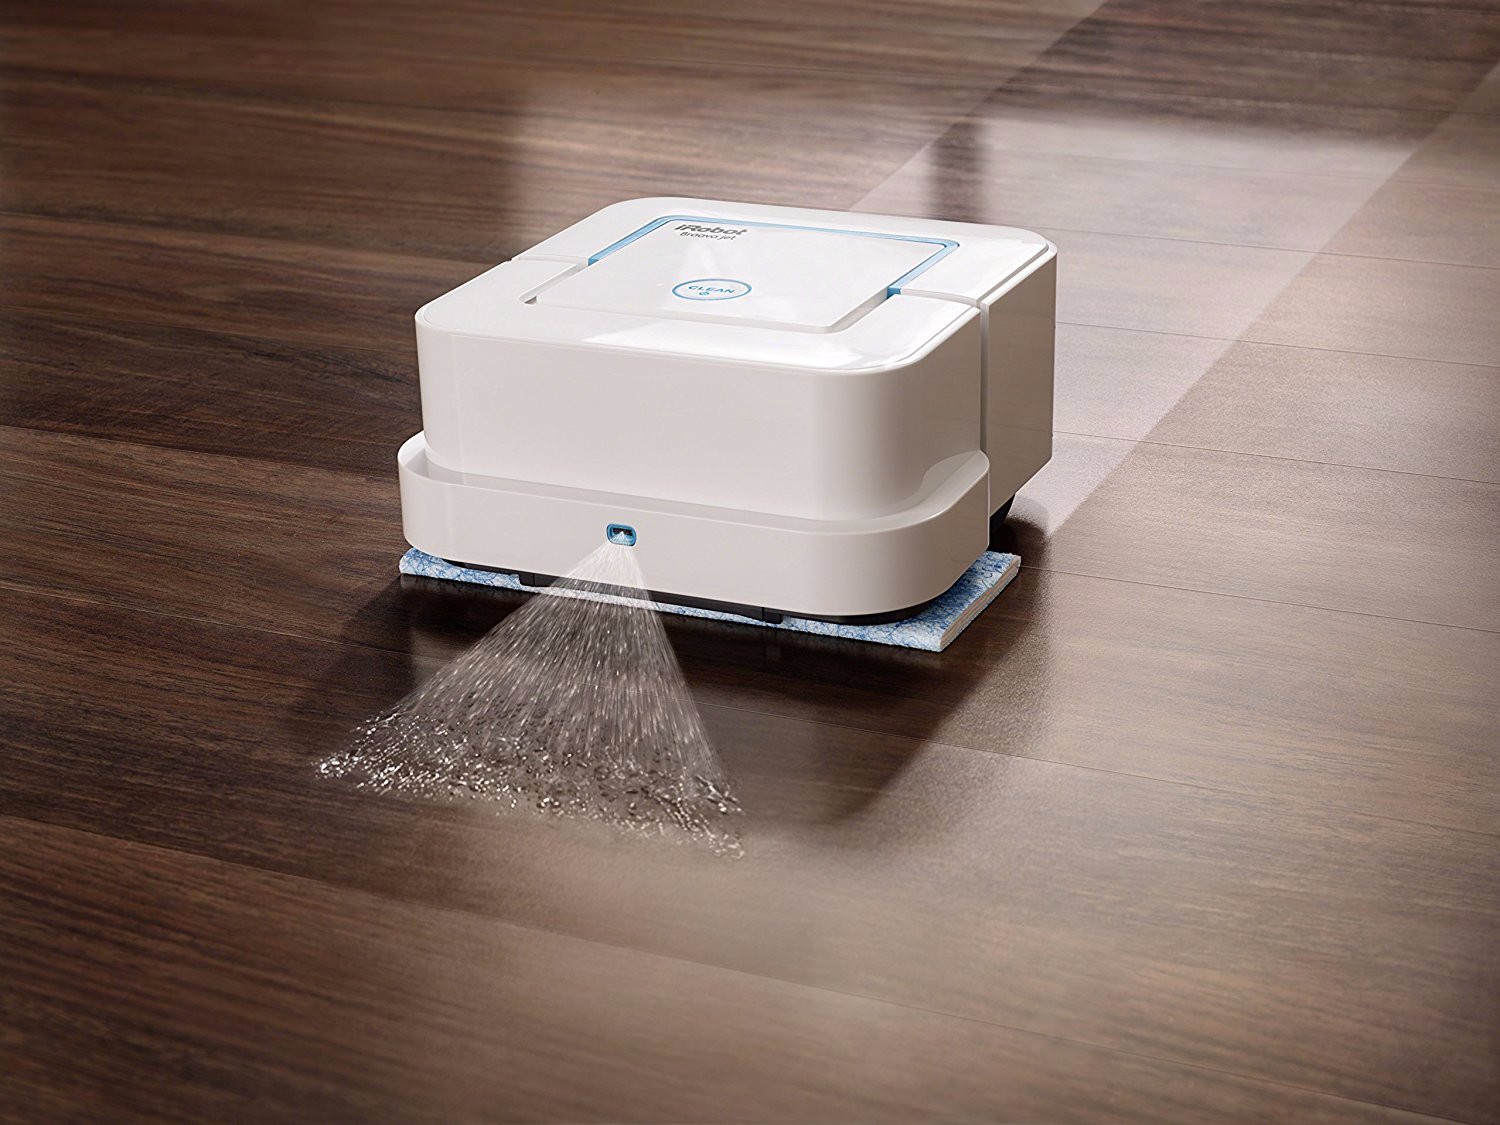 Carpet and Hardwood Floor Cleaning Companies Of 12 Smart Home Gadgets that Practically Clean the House for You Pertaining to Keep Scrolling to See How You Can Make Your Life A Lot Easier with these Cleaning tools